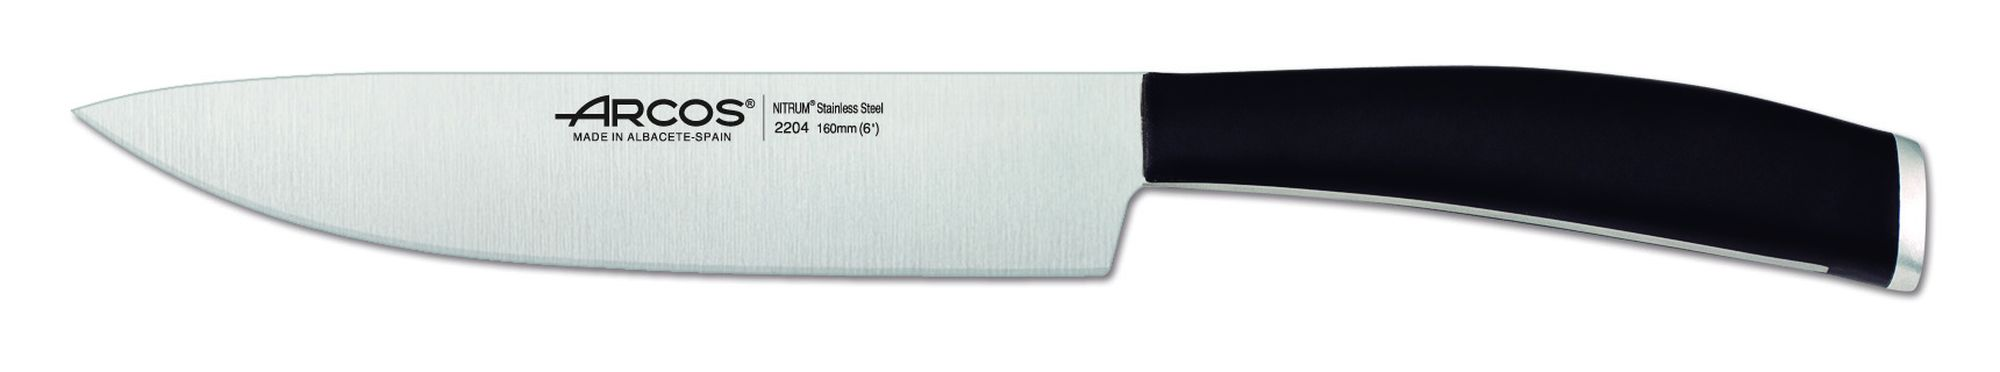 Kitchen Knife Arcos ref.: 220400